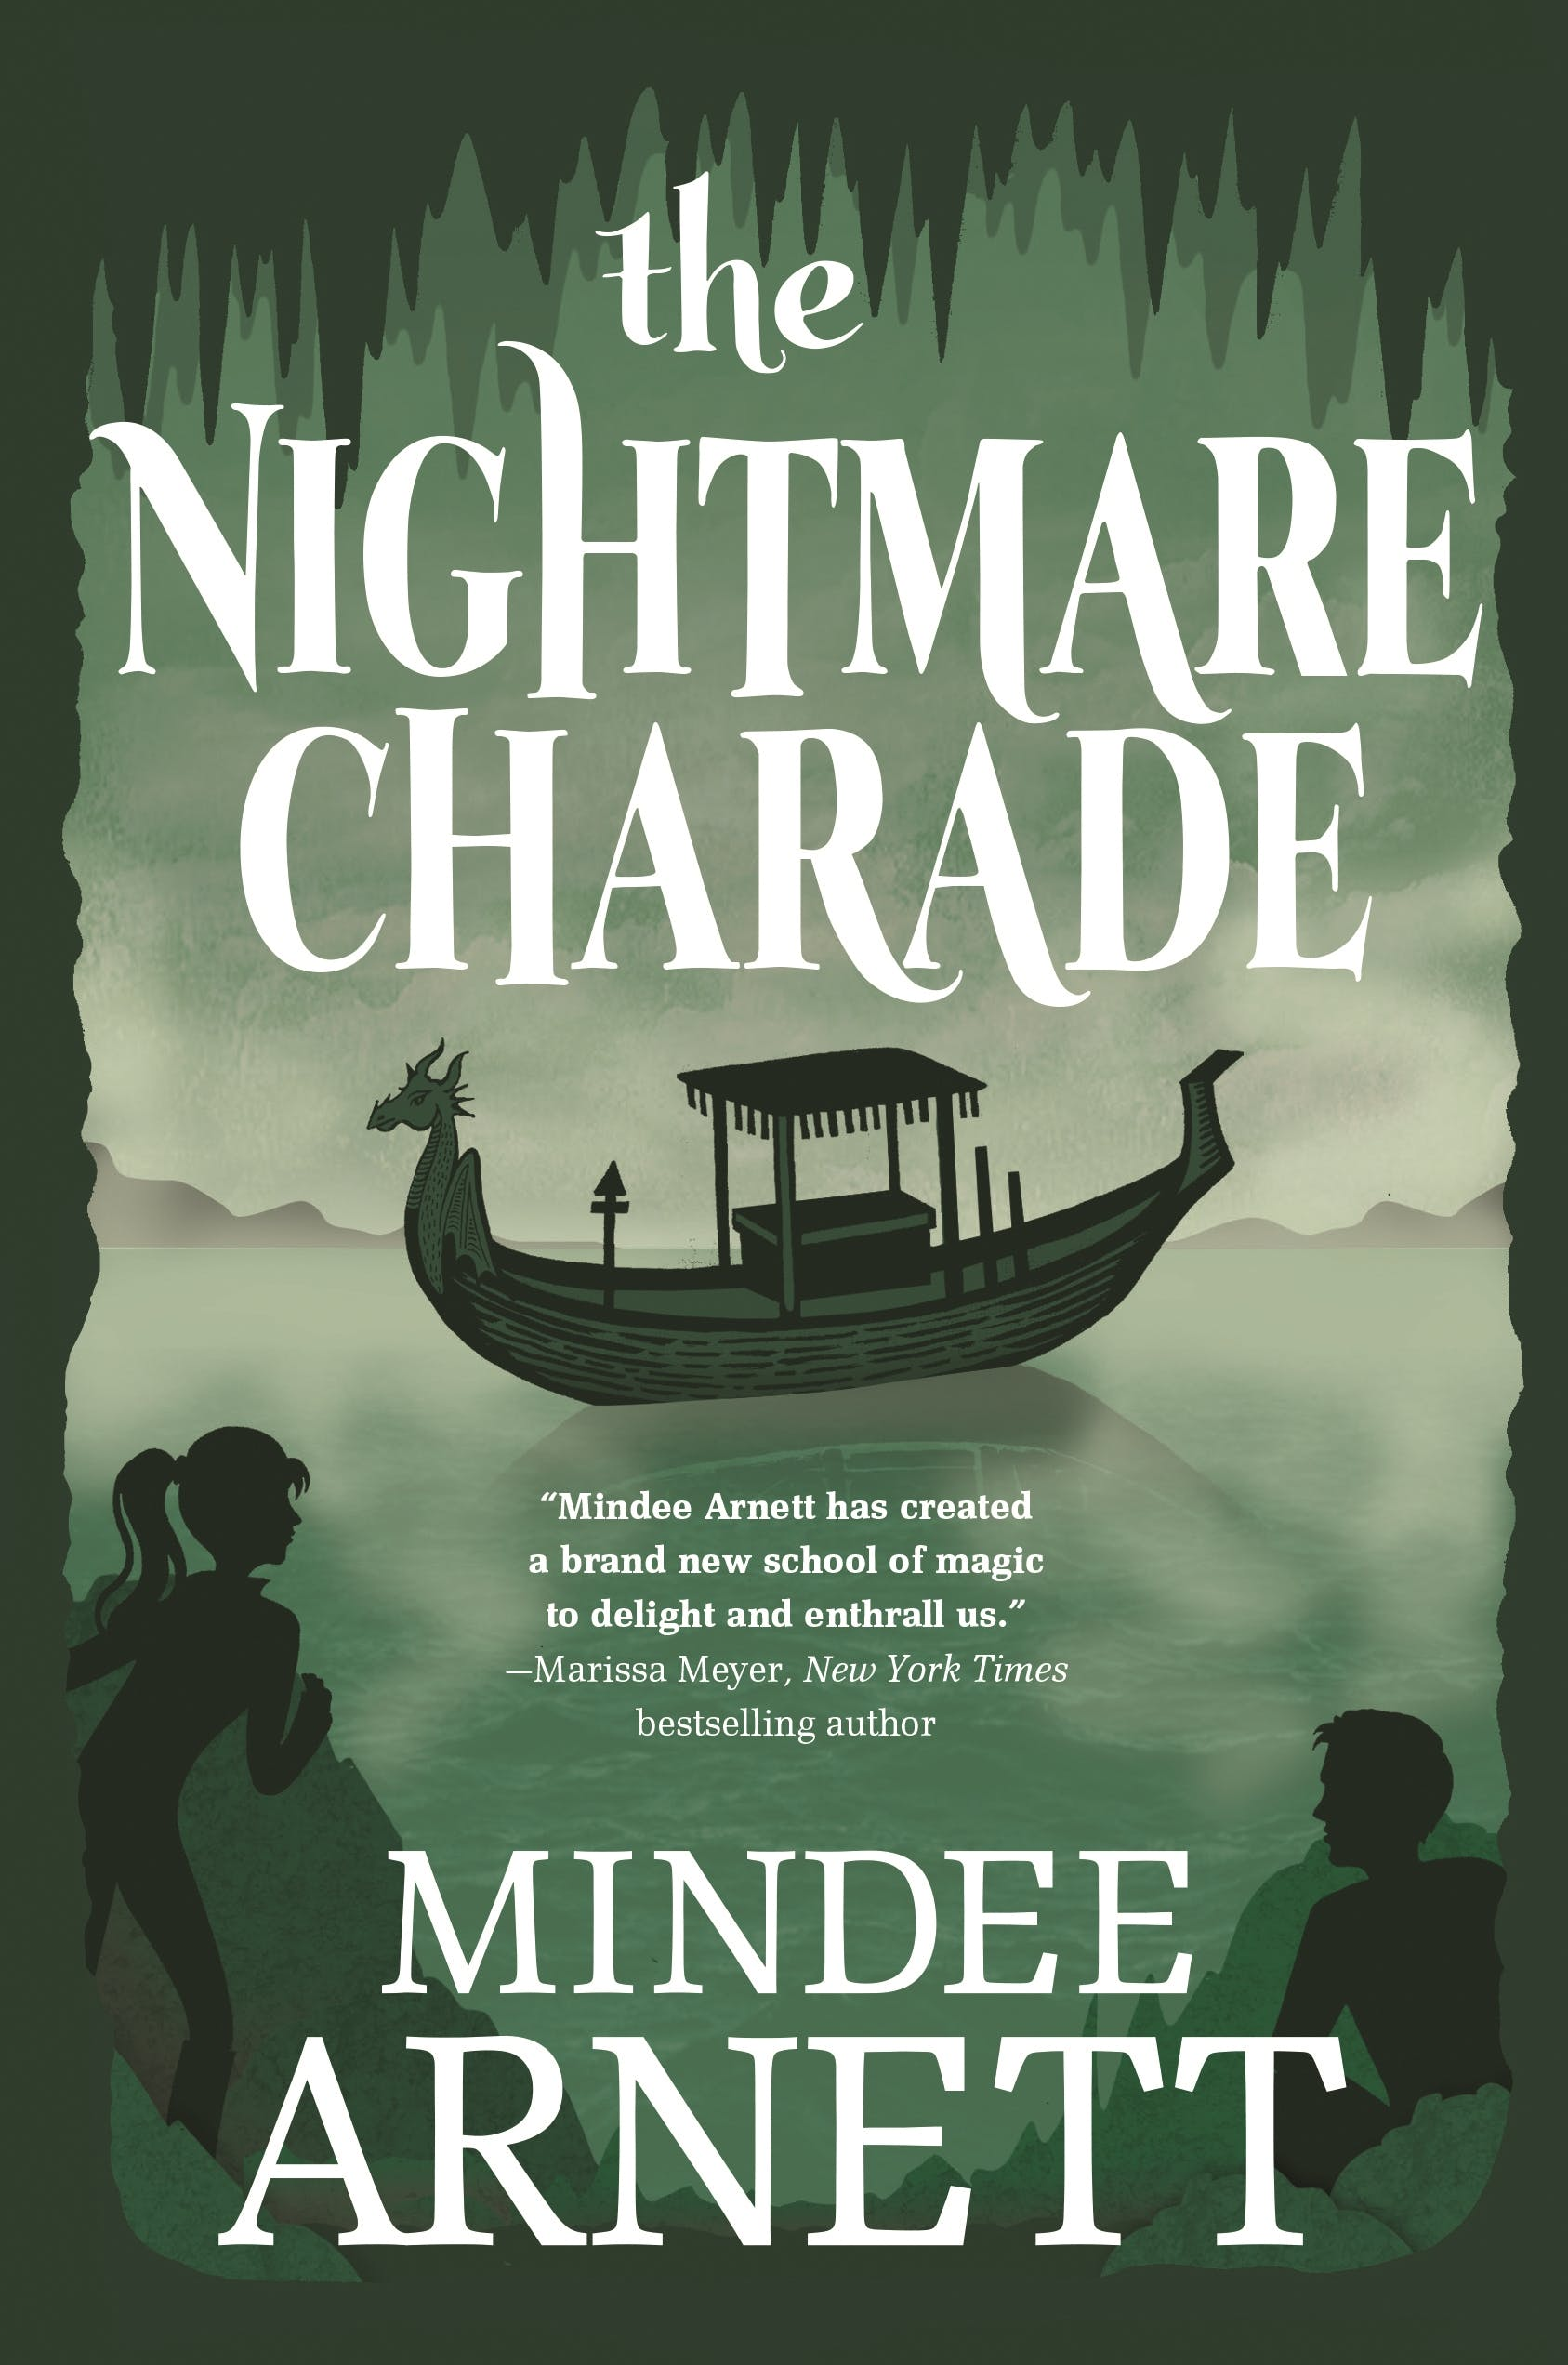 Image of The Nightmare Charade